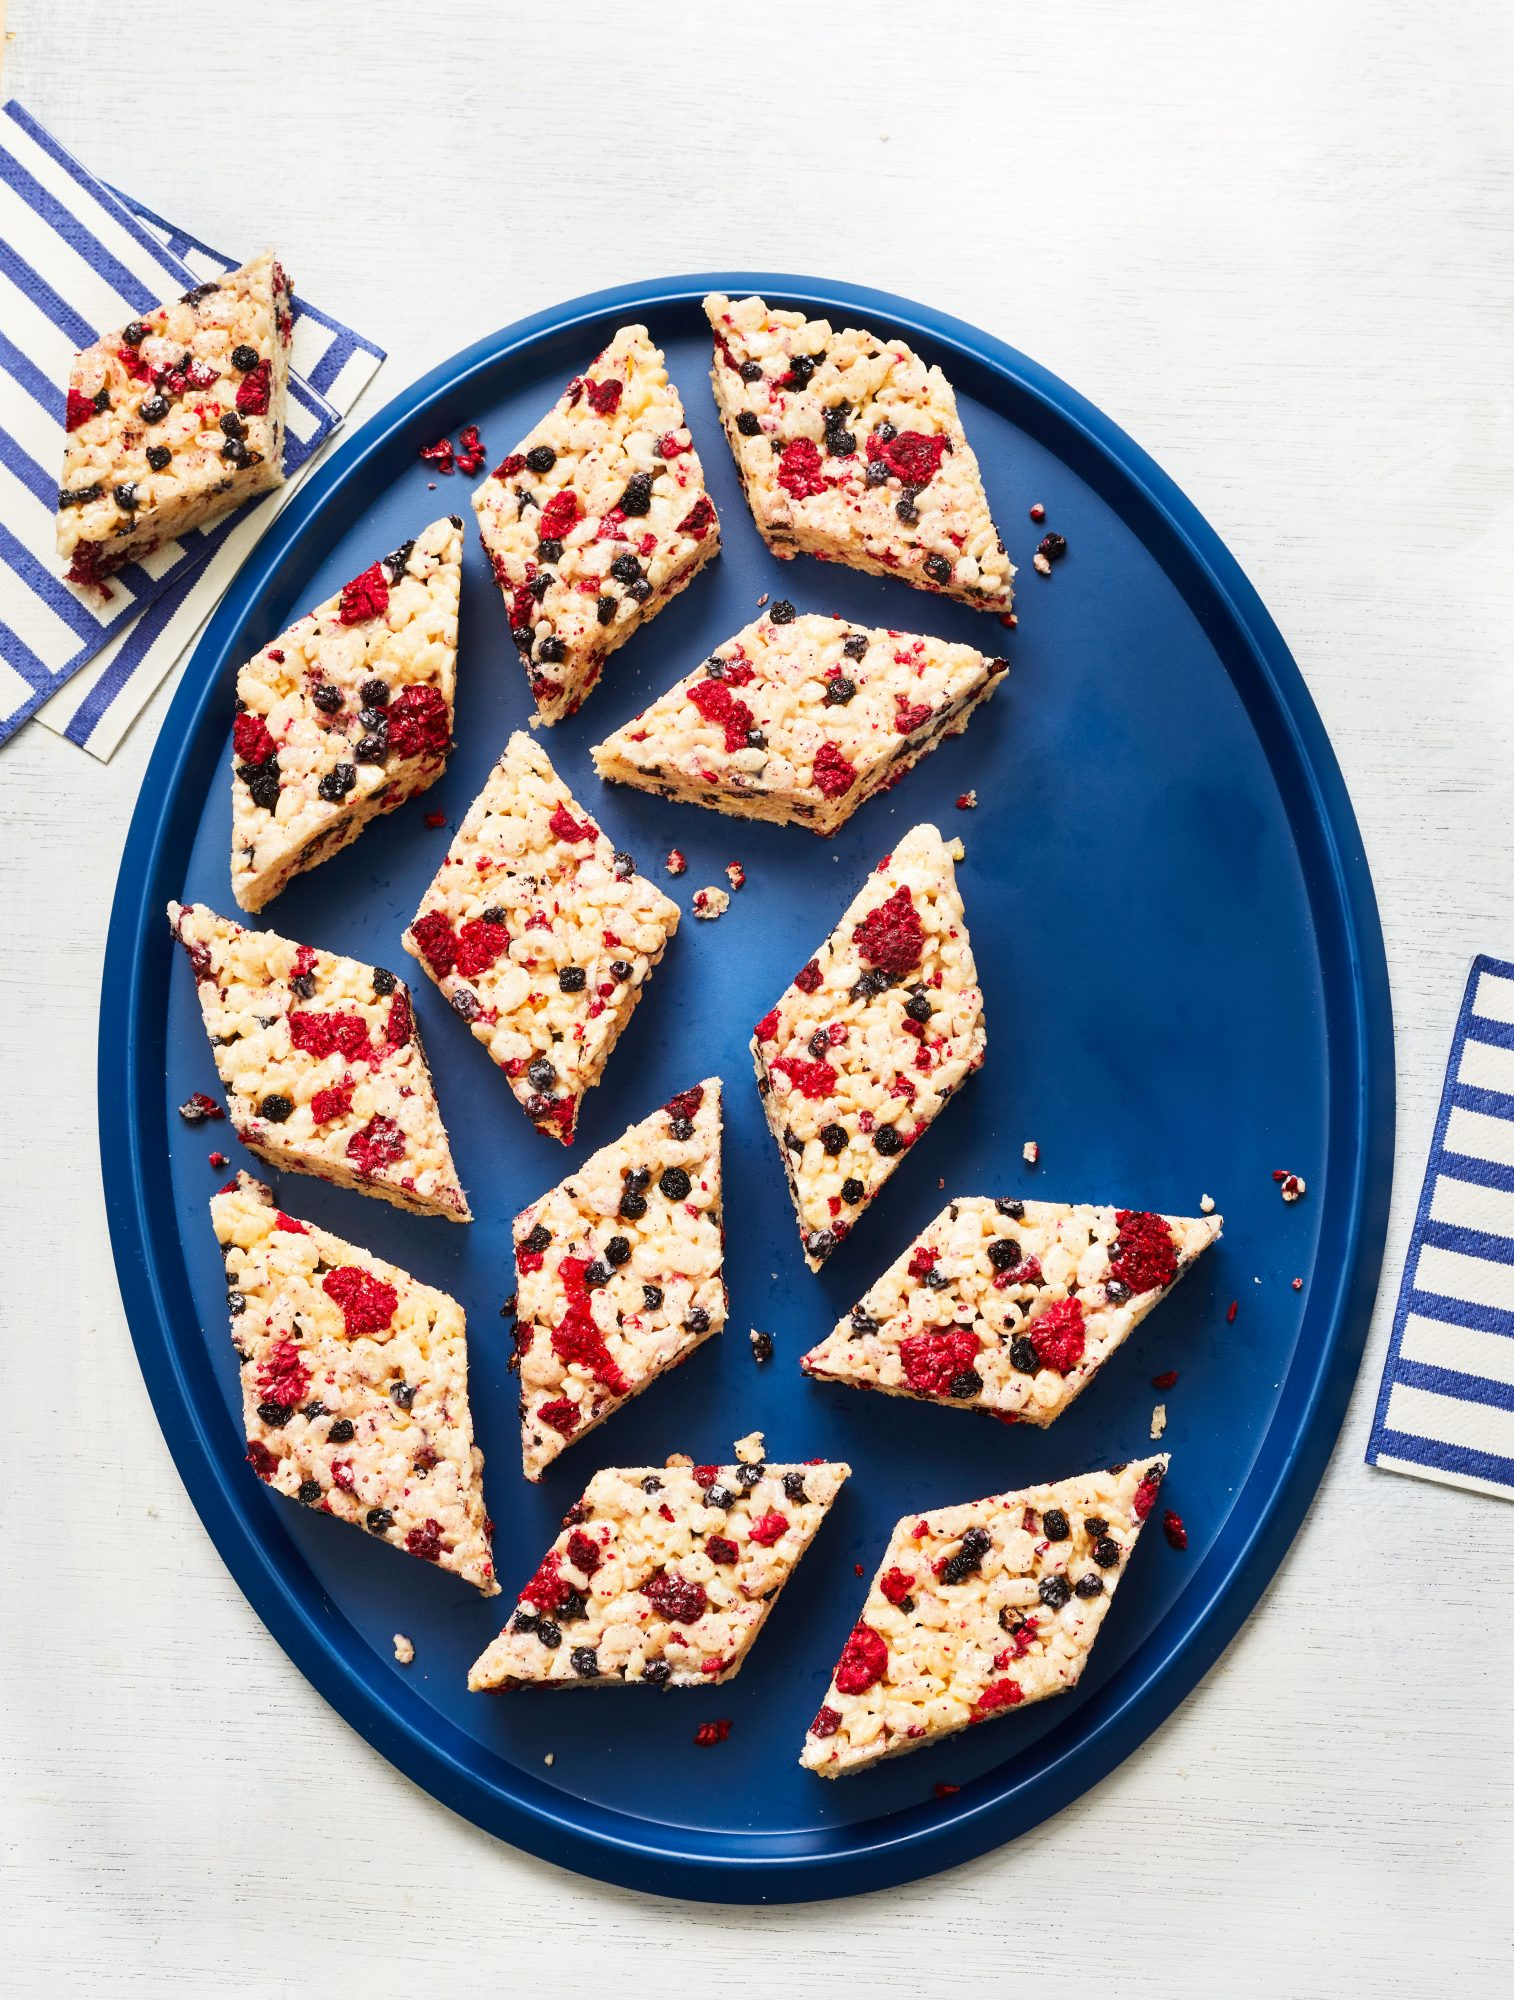 Crispy Cereal-and-Berry Bars